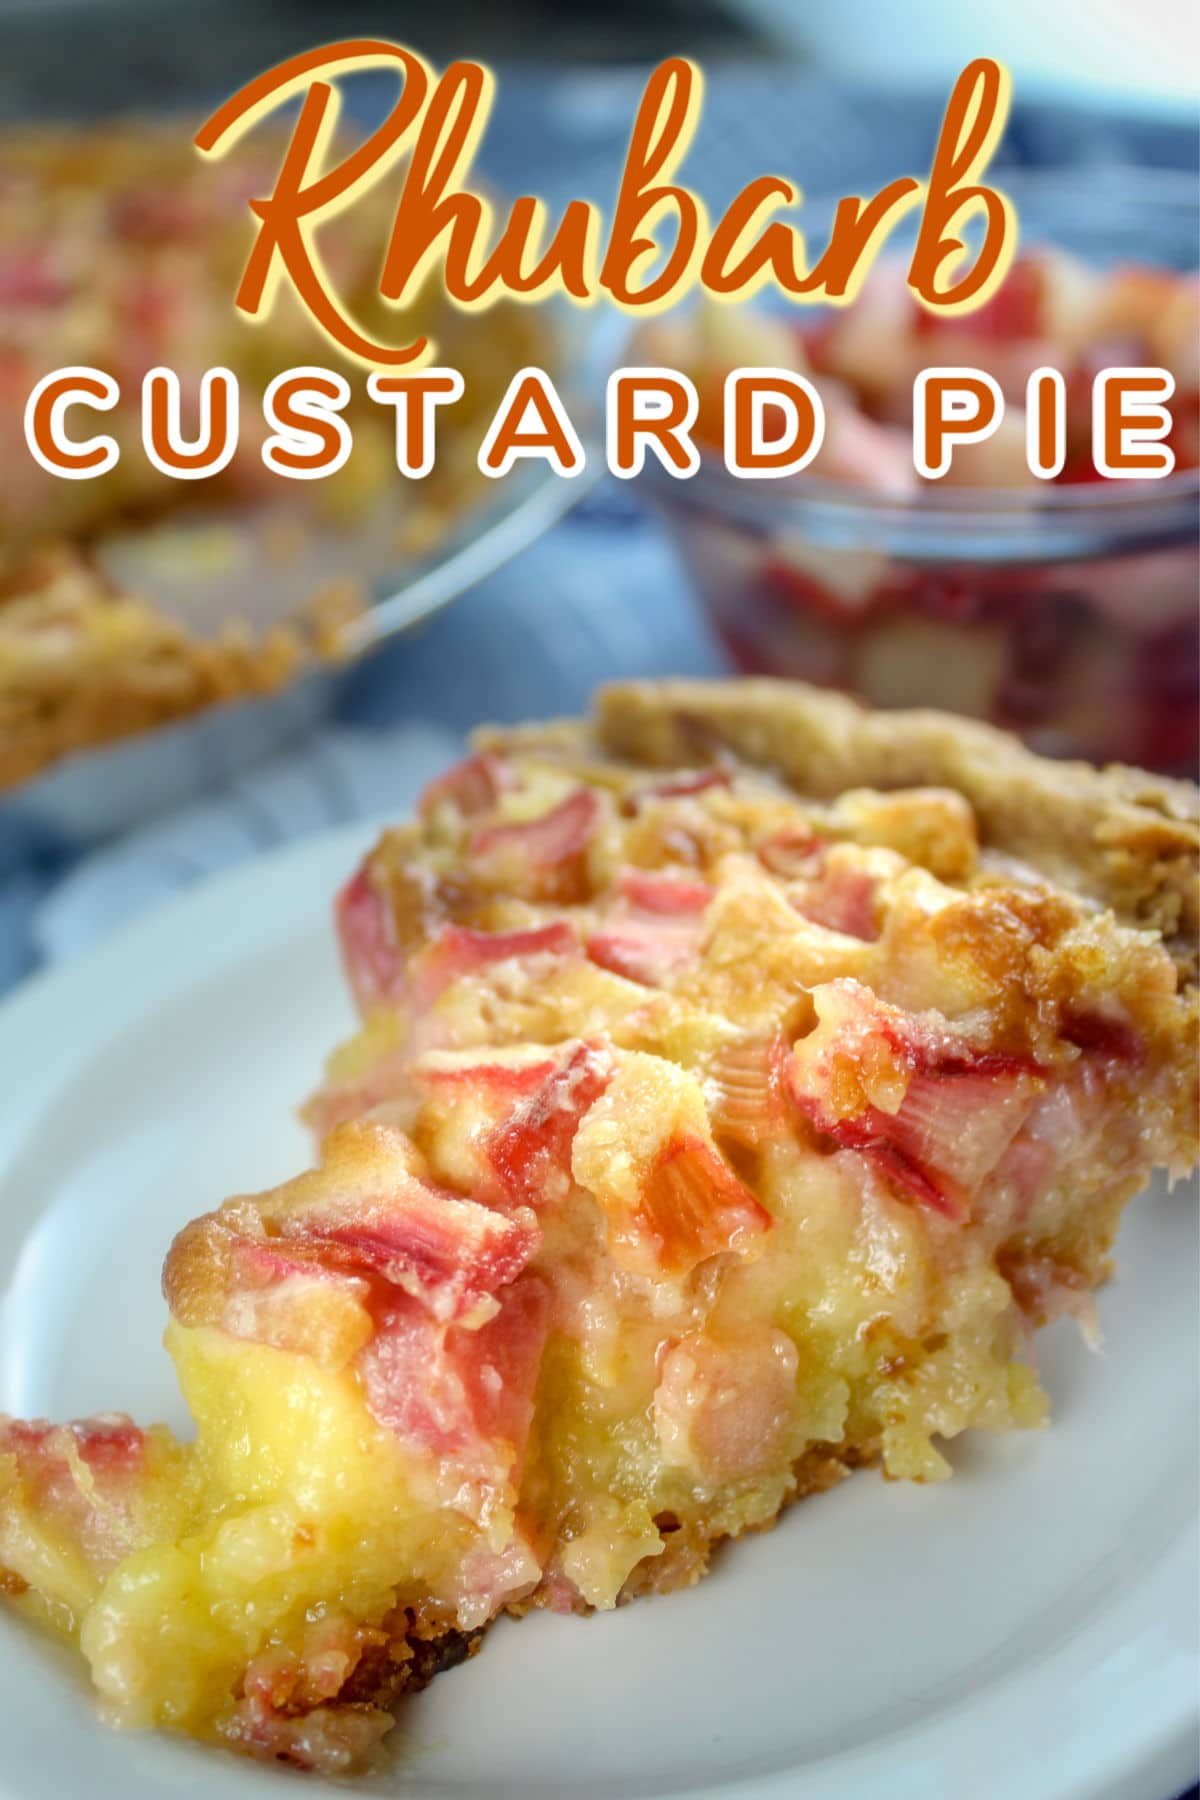 Rhubarb Custard Pie is my favorite dessert but I've never made it - so this year - I decided to give it a whirl for my birthday!